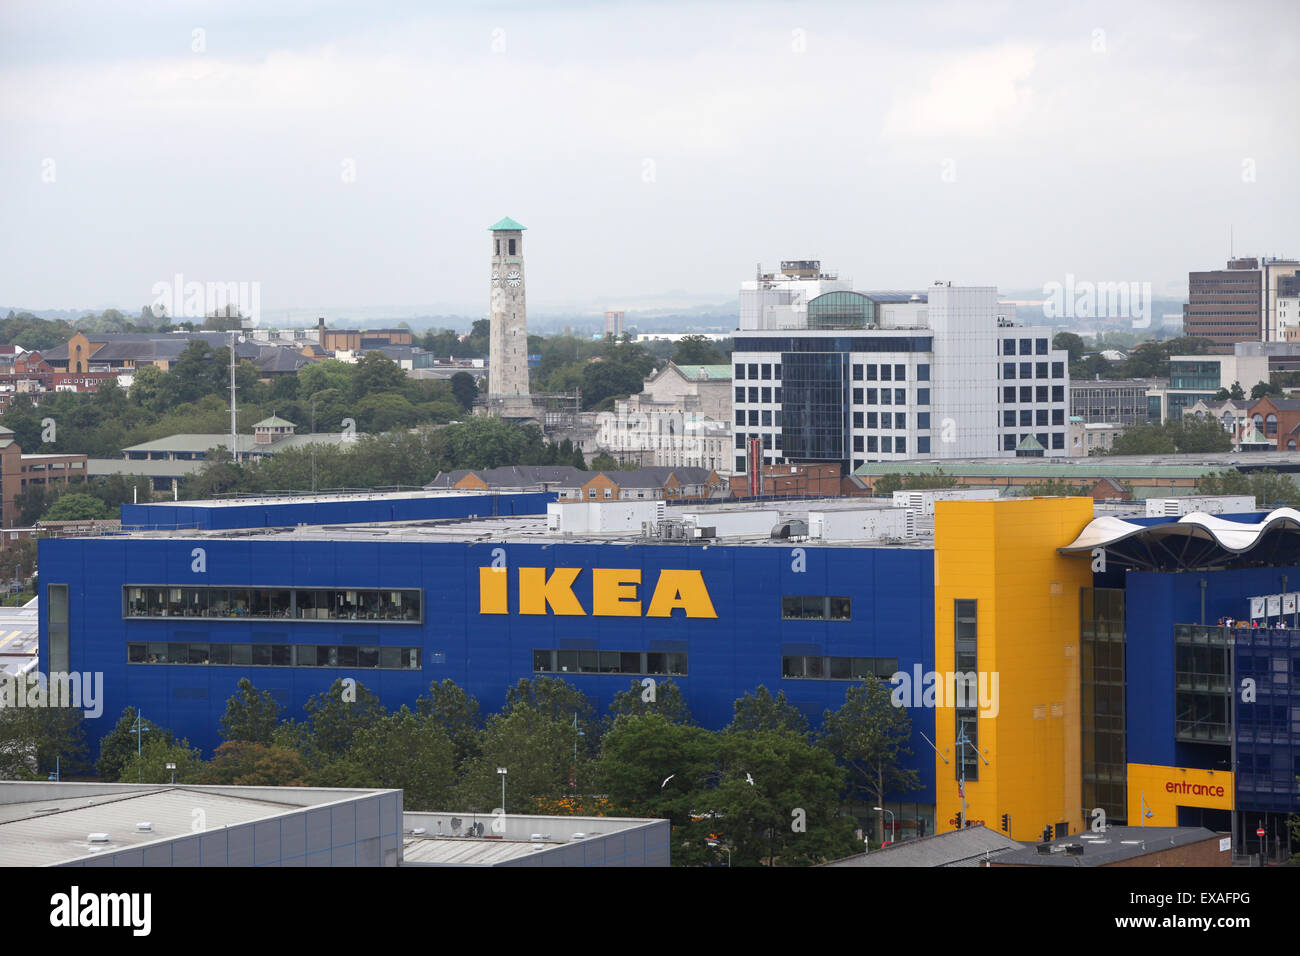 Ikea store in Southampton with a view of the city behind - Stock Image